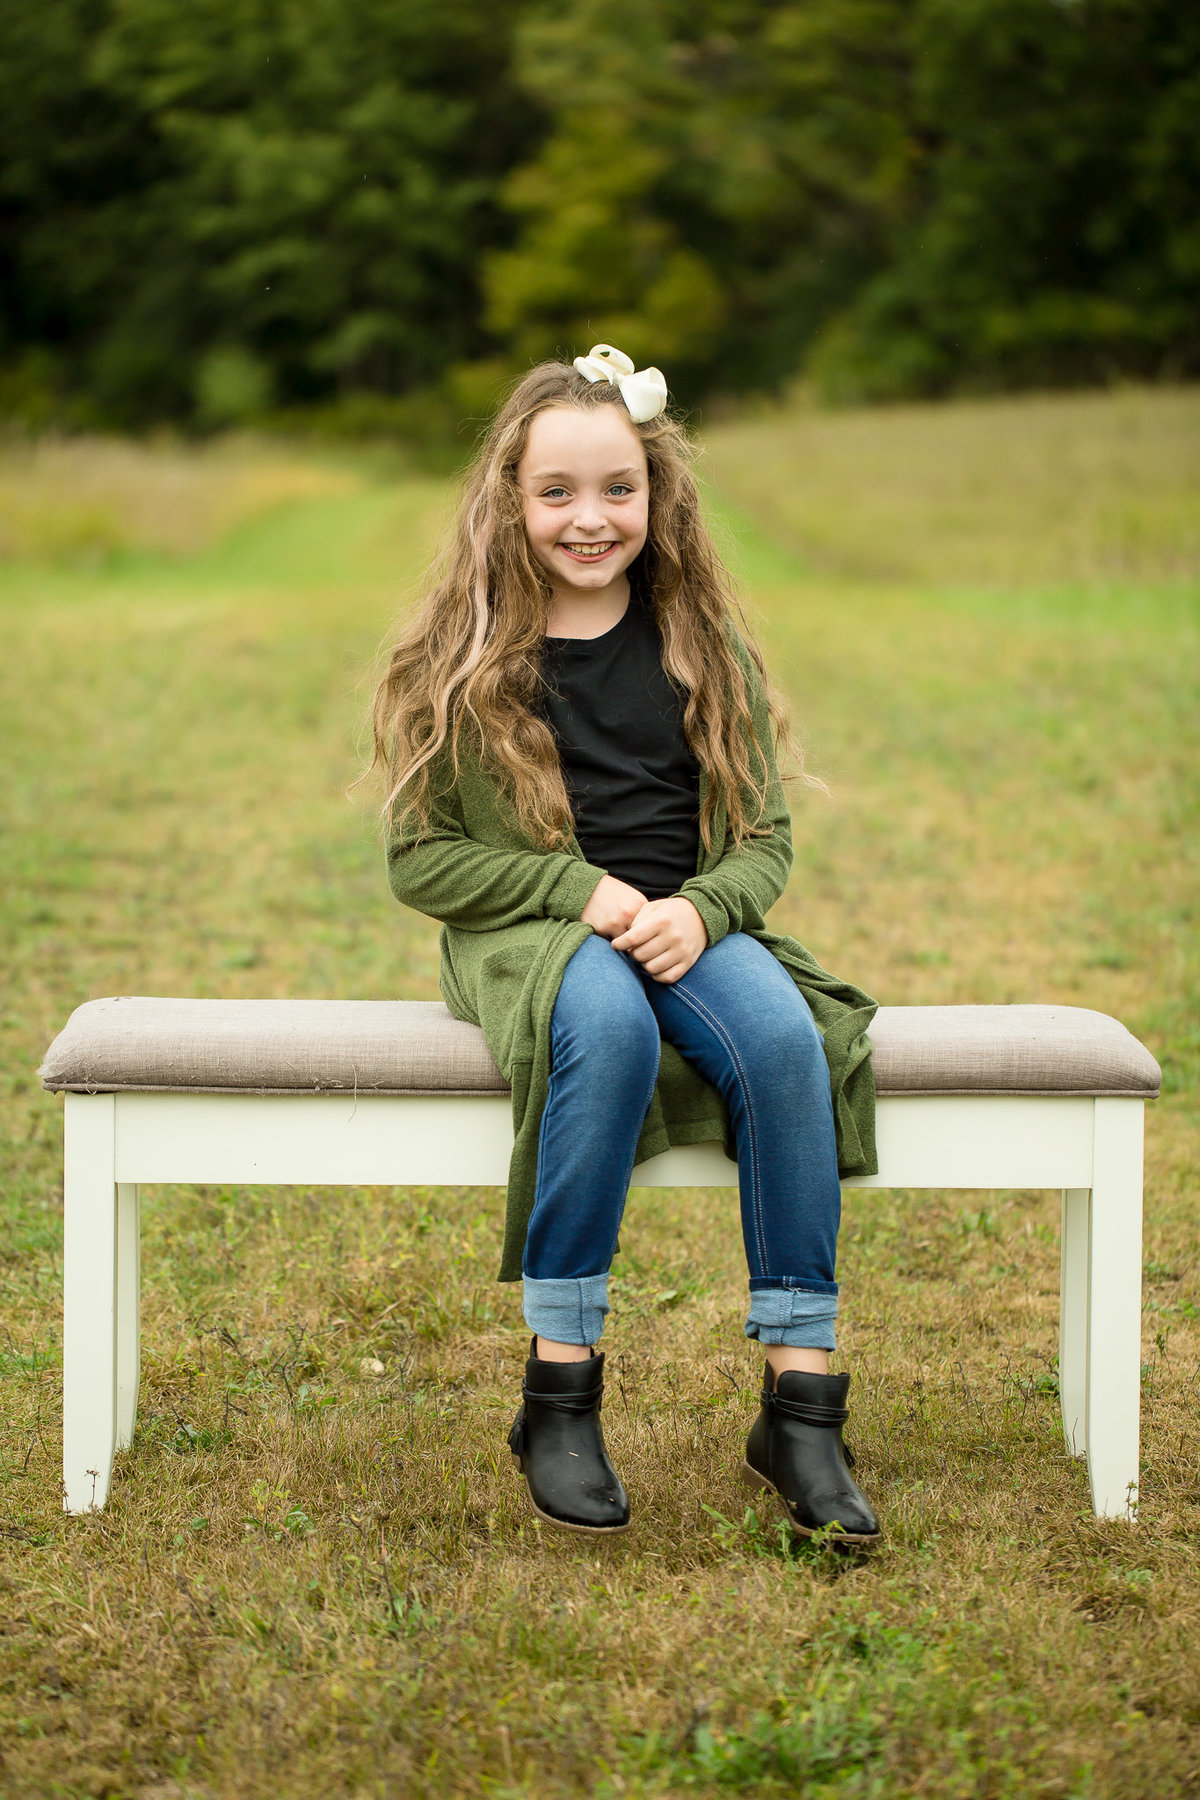 Brynn-Wheatley-Photography-2019-Palmer-Mini-Session-IN-14